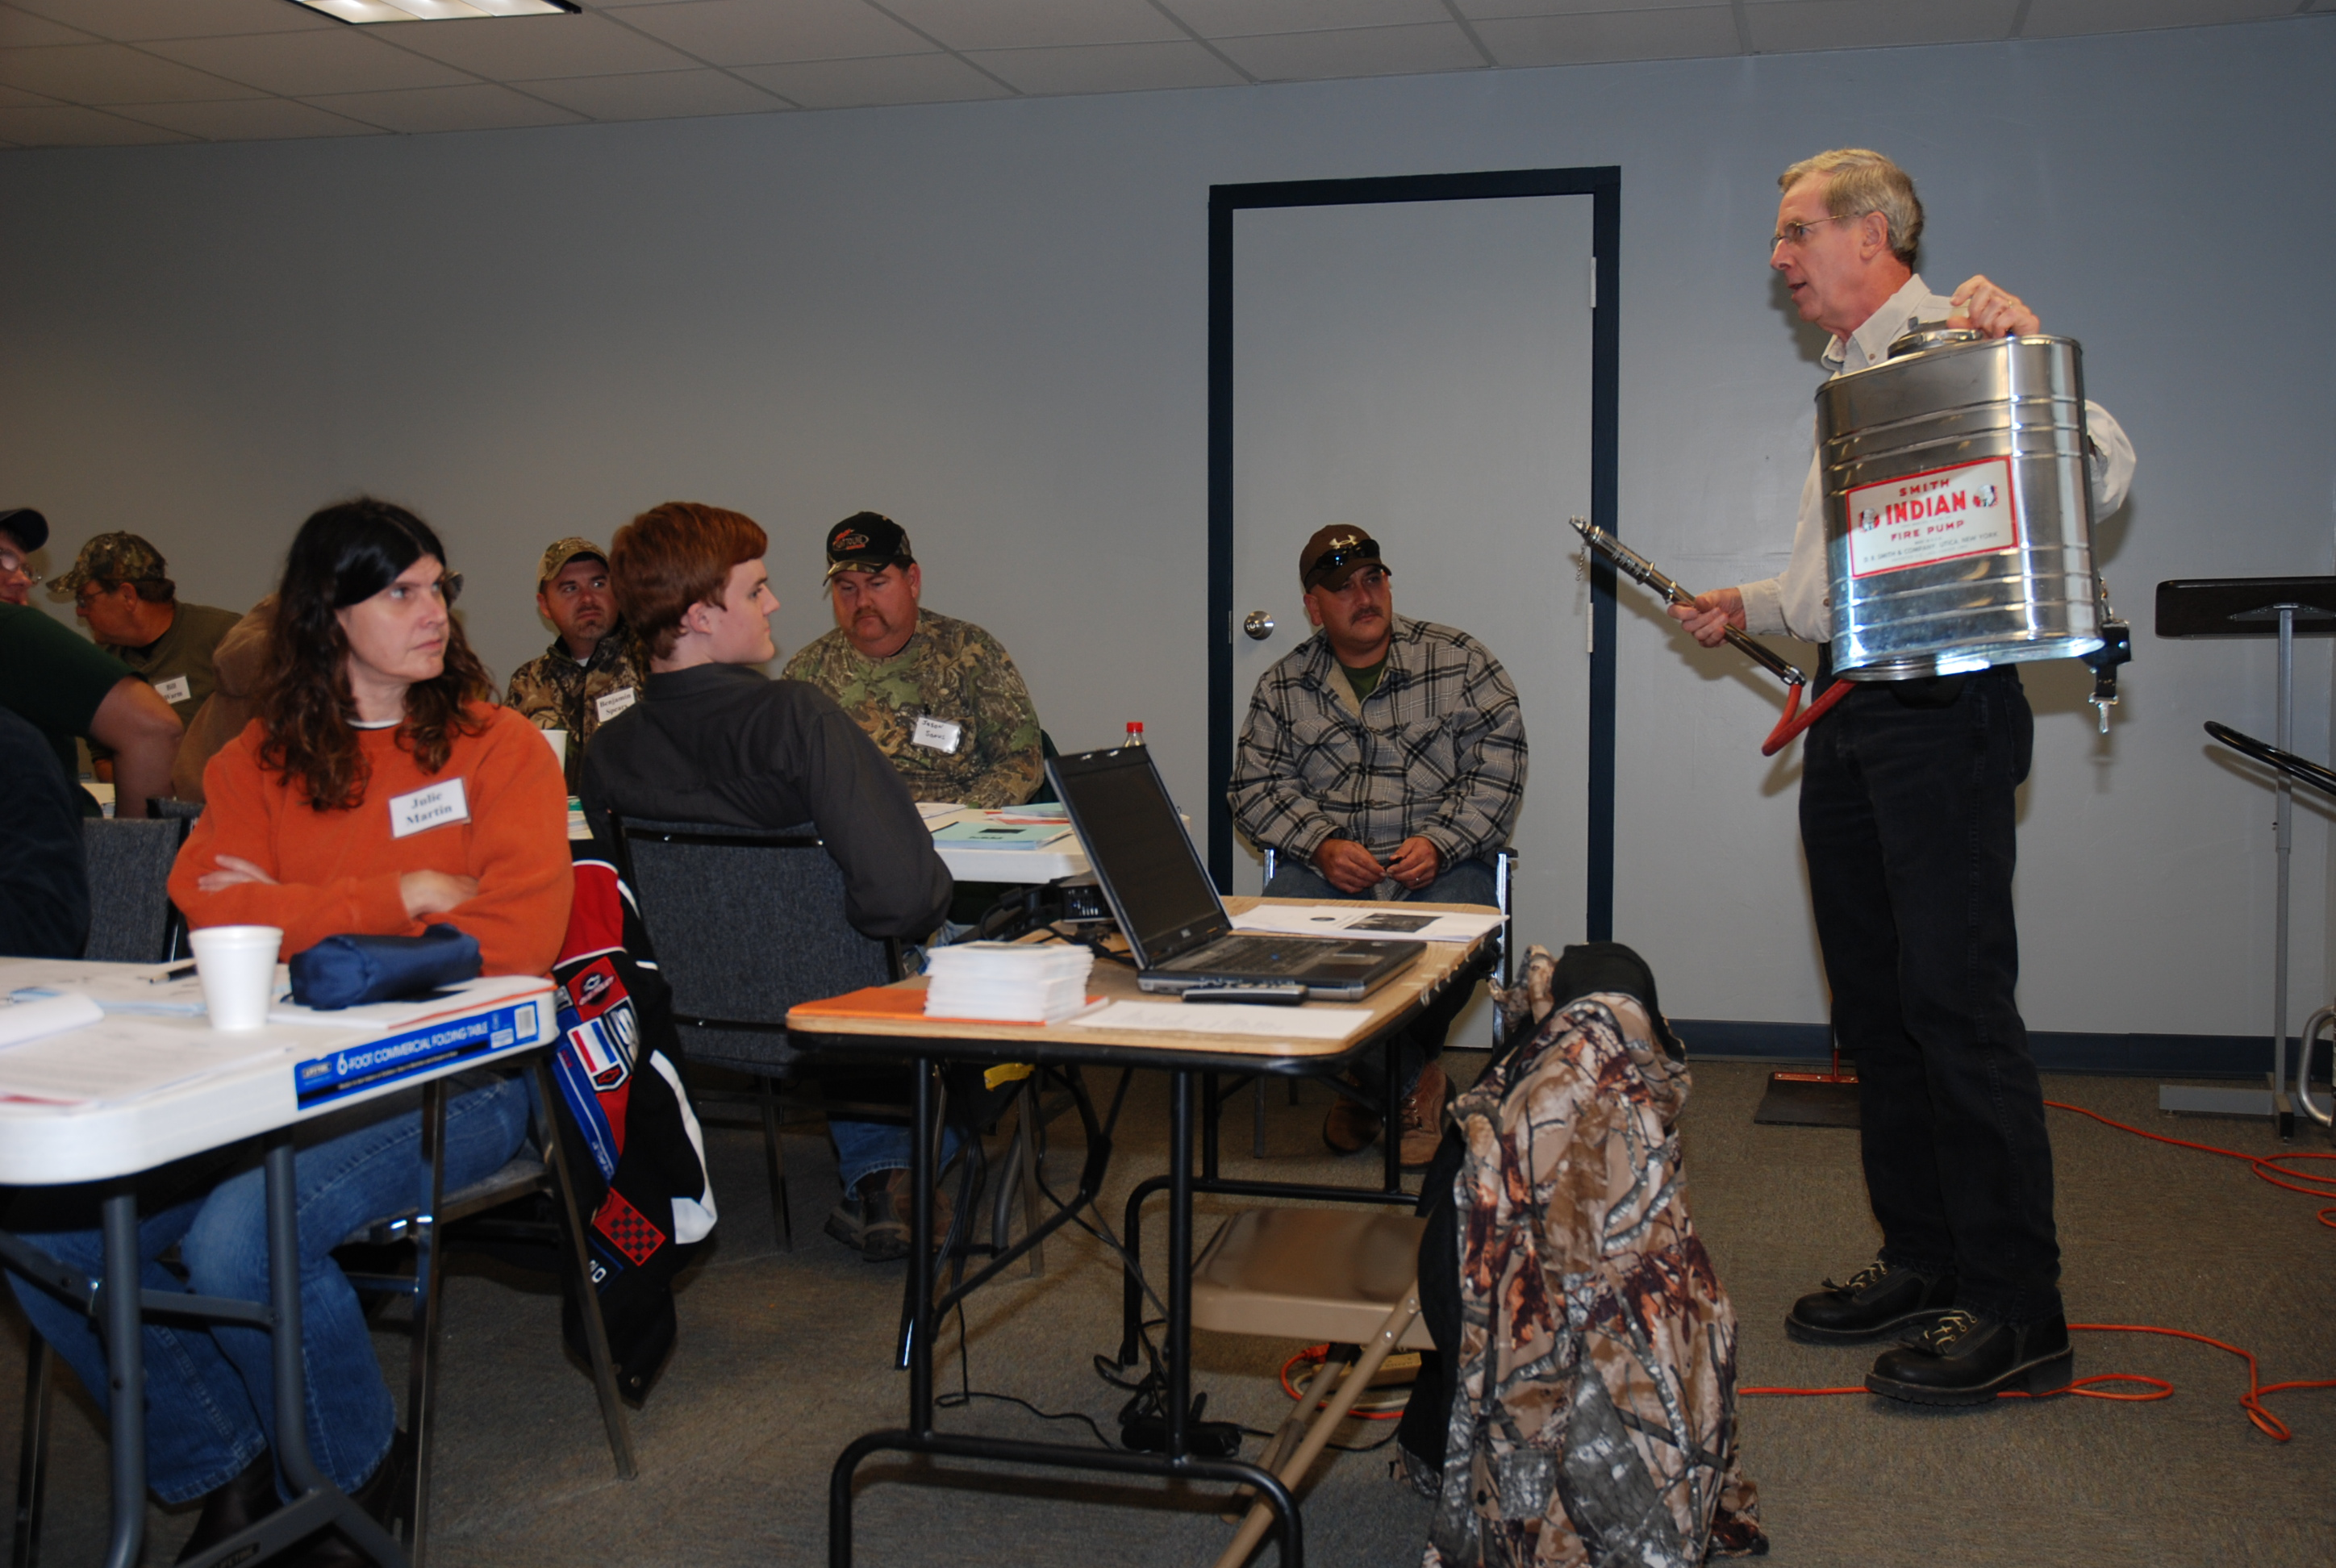 Prescribed burning topic of certification workshop